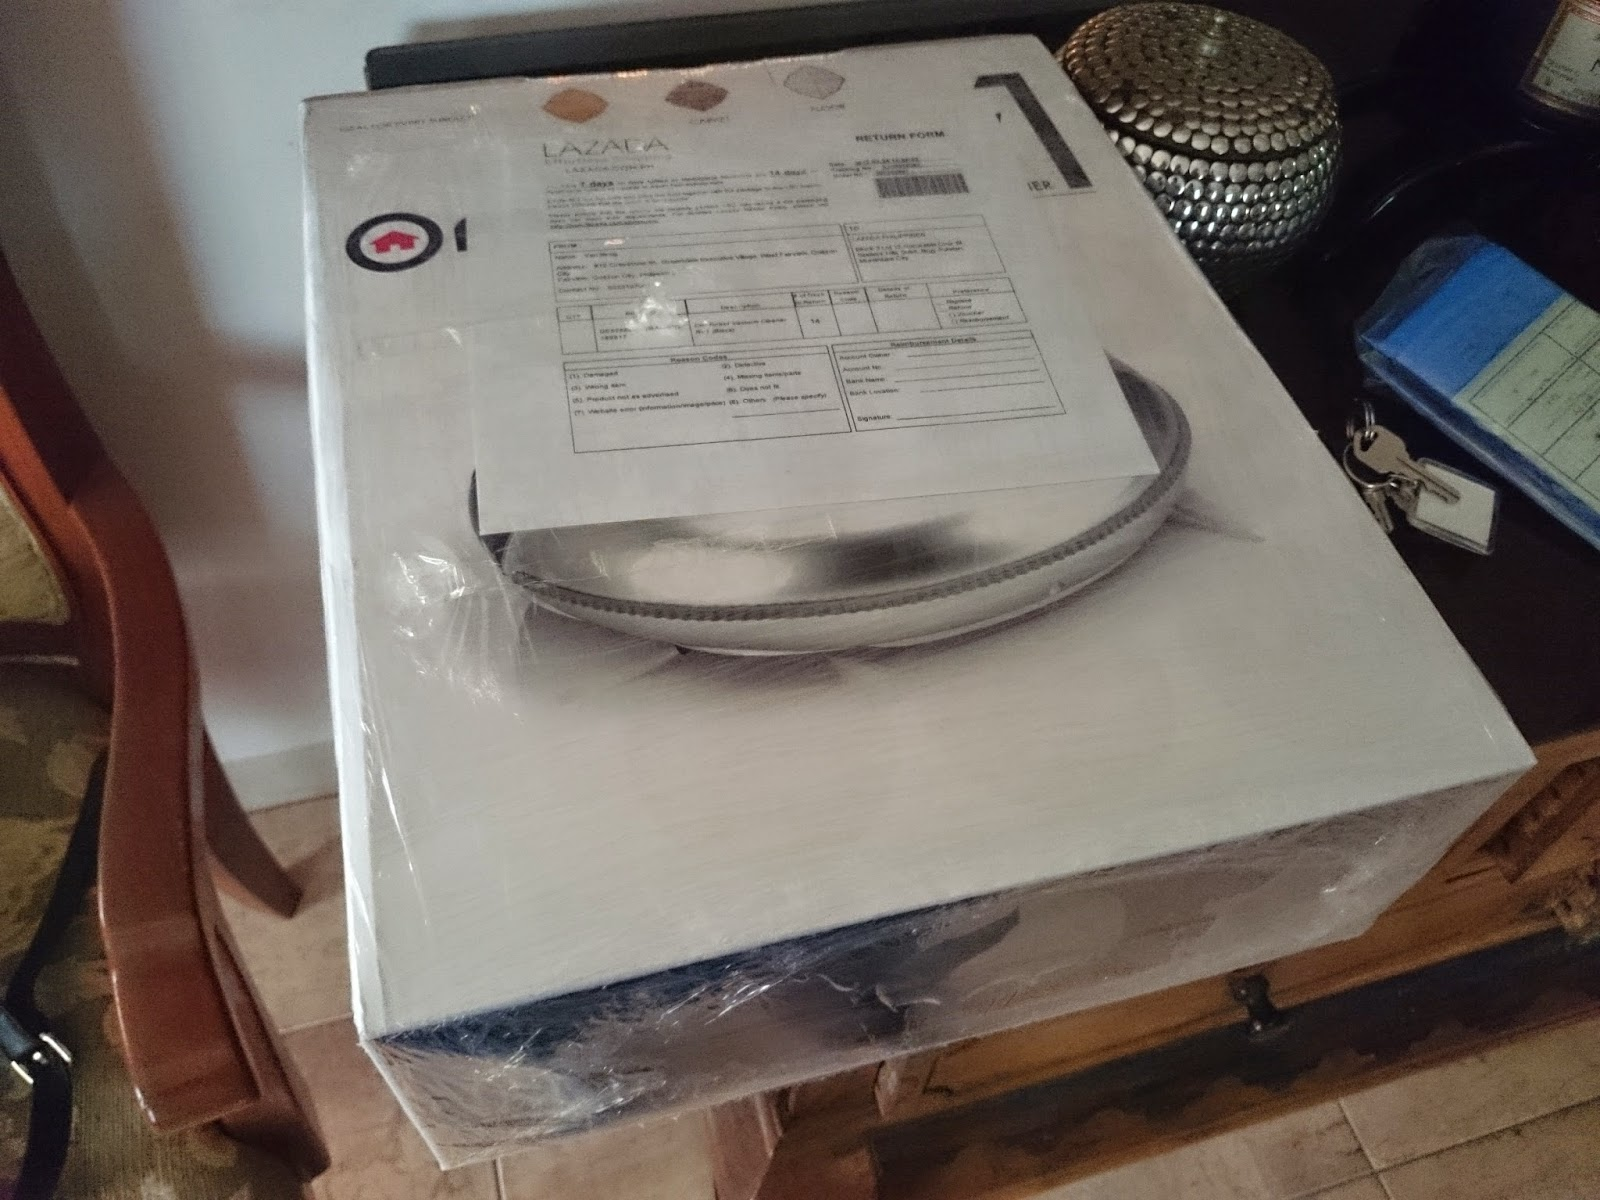 OMI RVI Robot Vacuum Cleaner Box